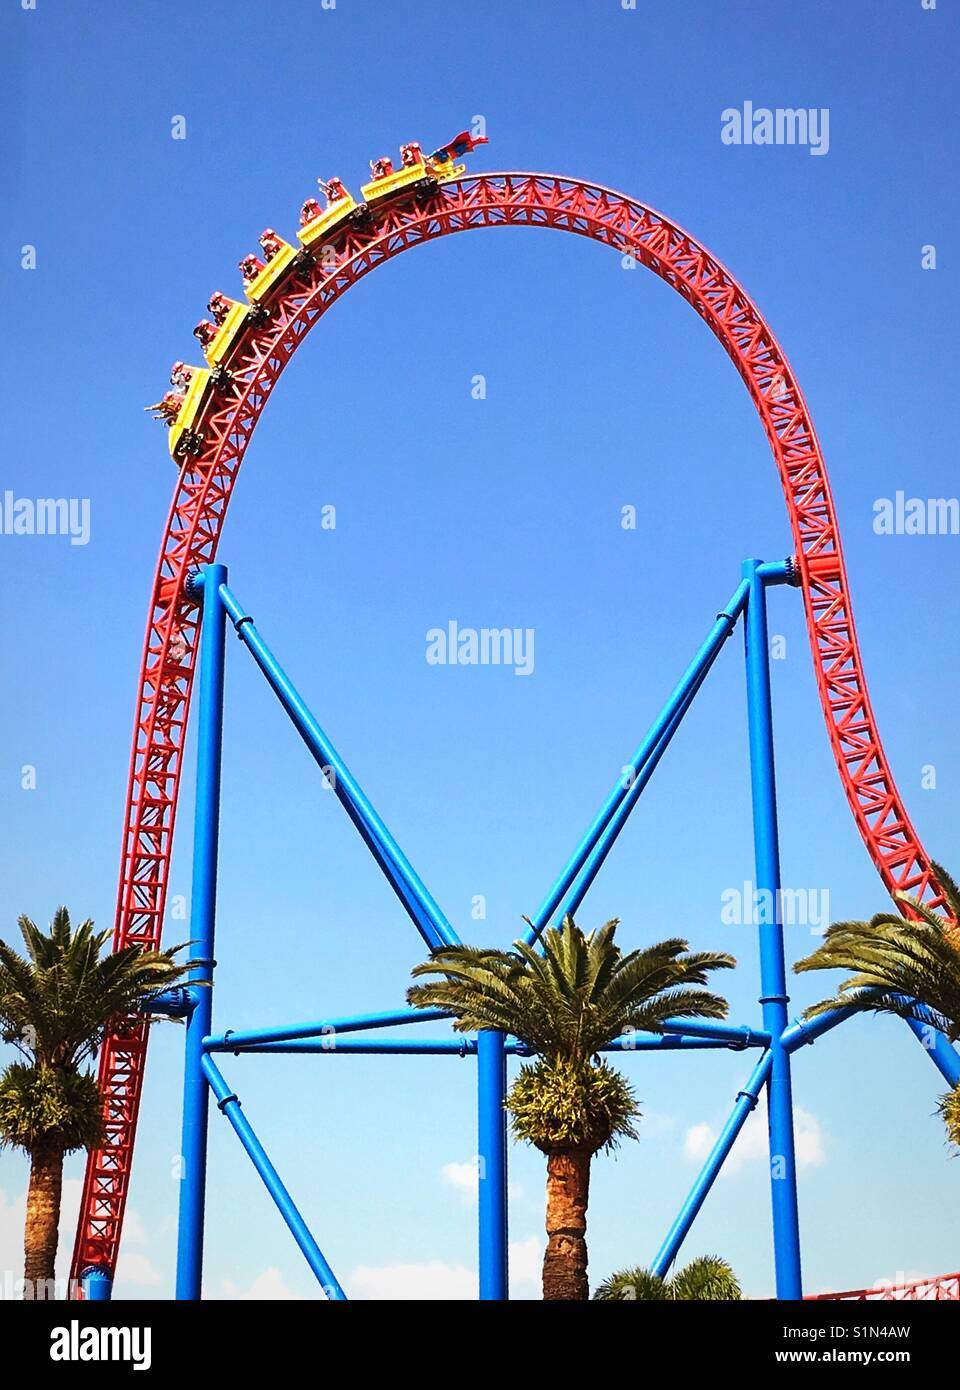 Roller coaster car going down a steep drop Stock Photo - Alamy